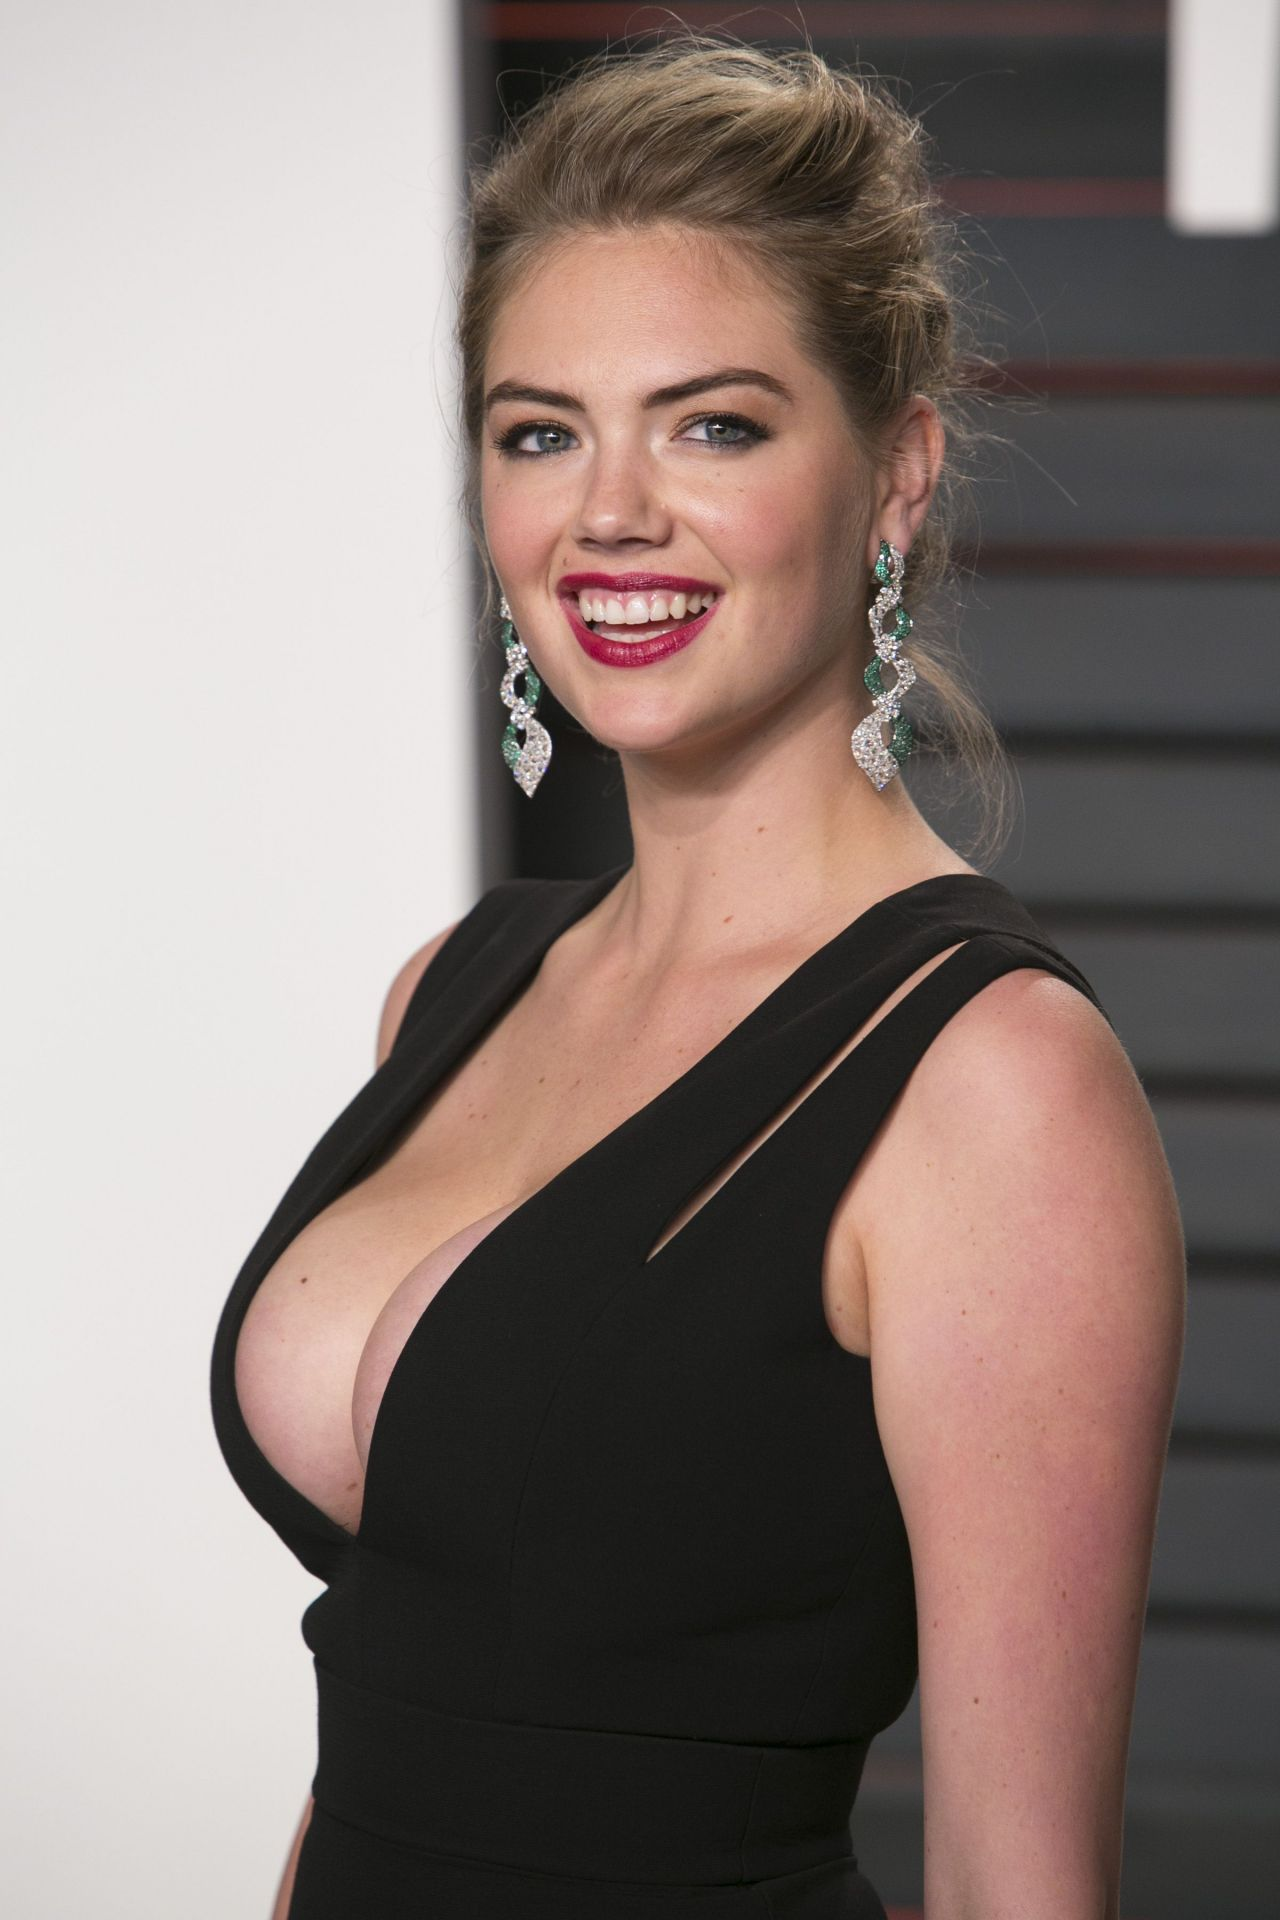 pin kate upton personal pictures leaked hacked by fappeningreport